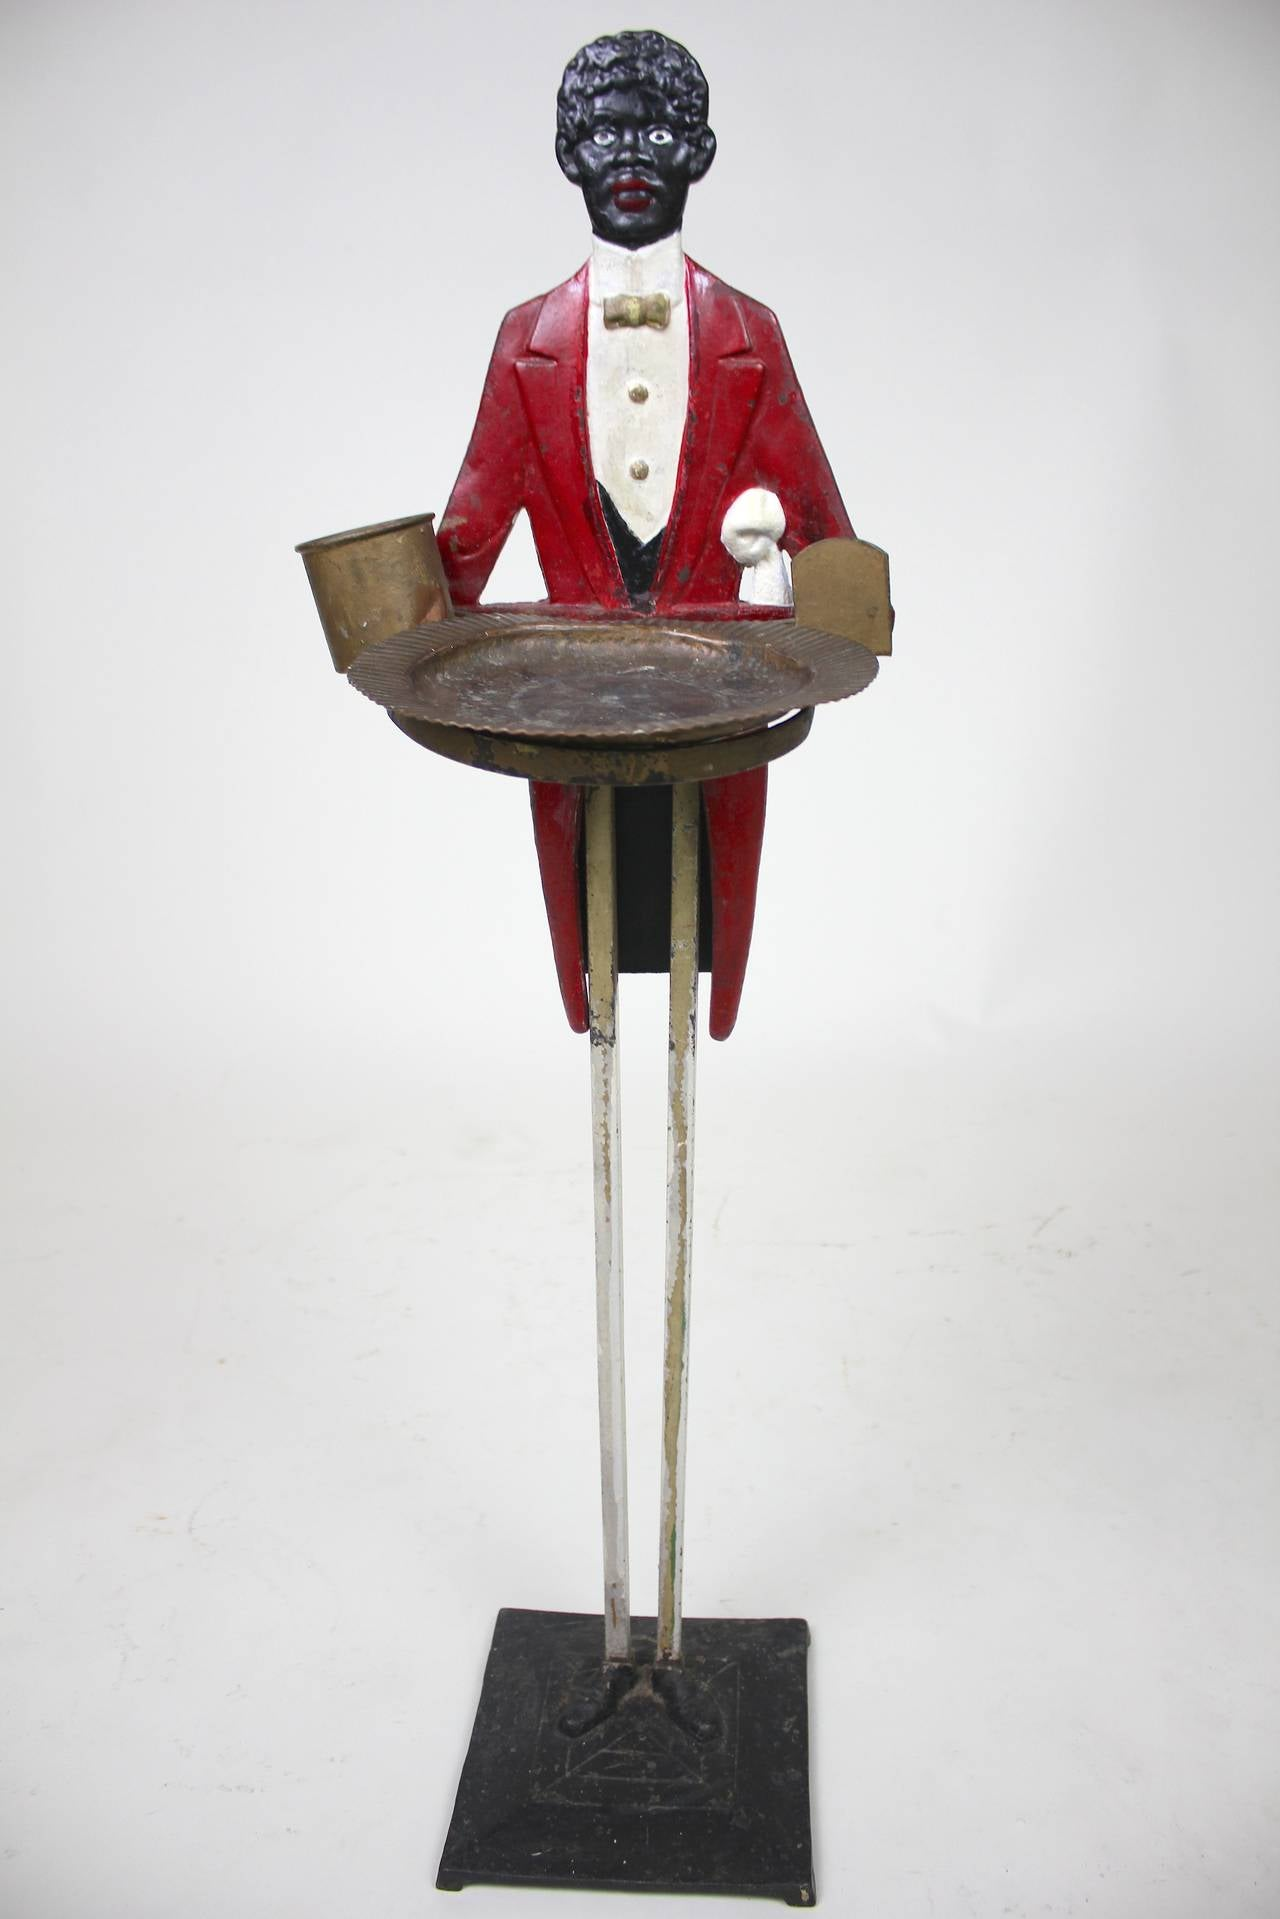 An American Folk Art Butler smoking stand for cigarettes, matches holding an ash tray, can also be used as an umbrella or cane stand(without the tray) or for serving hors d'oeuvres or candy, cards, etc. An original butler stand with a copper holder